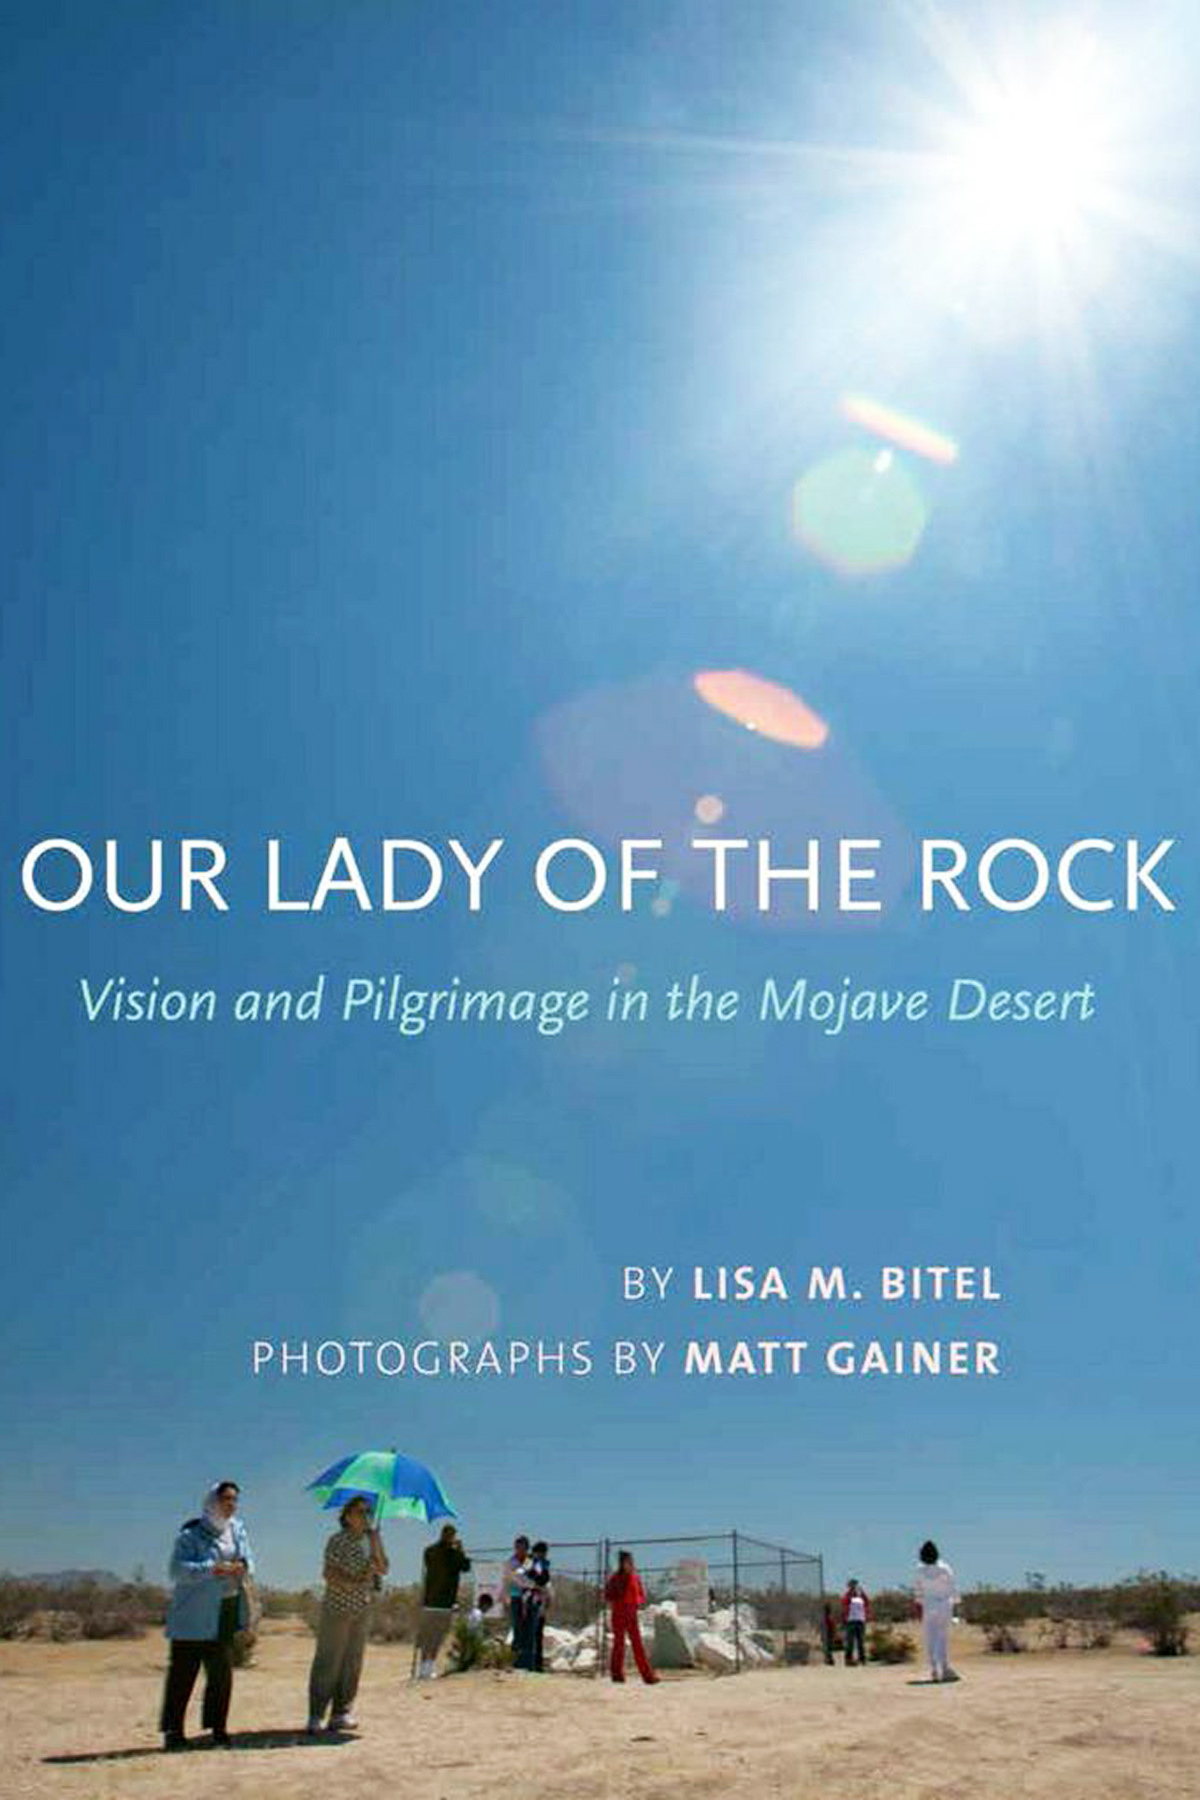 Lisa Bitel and Matt Gainer's new book examines the development of a contemporary visionary phenomenon in the California desert.